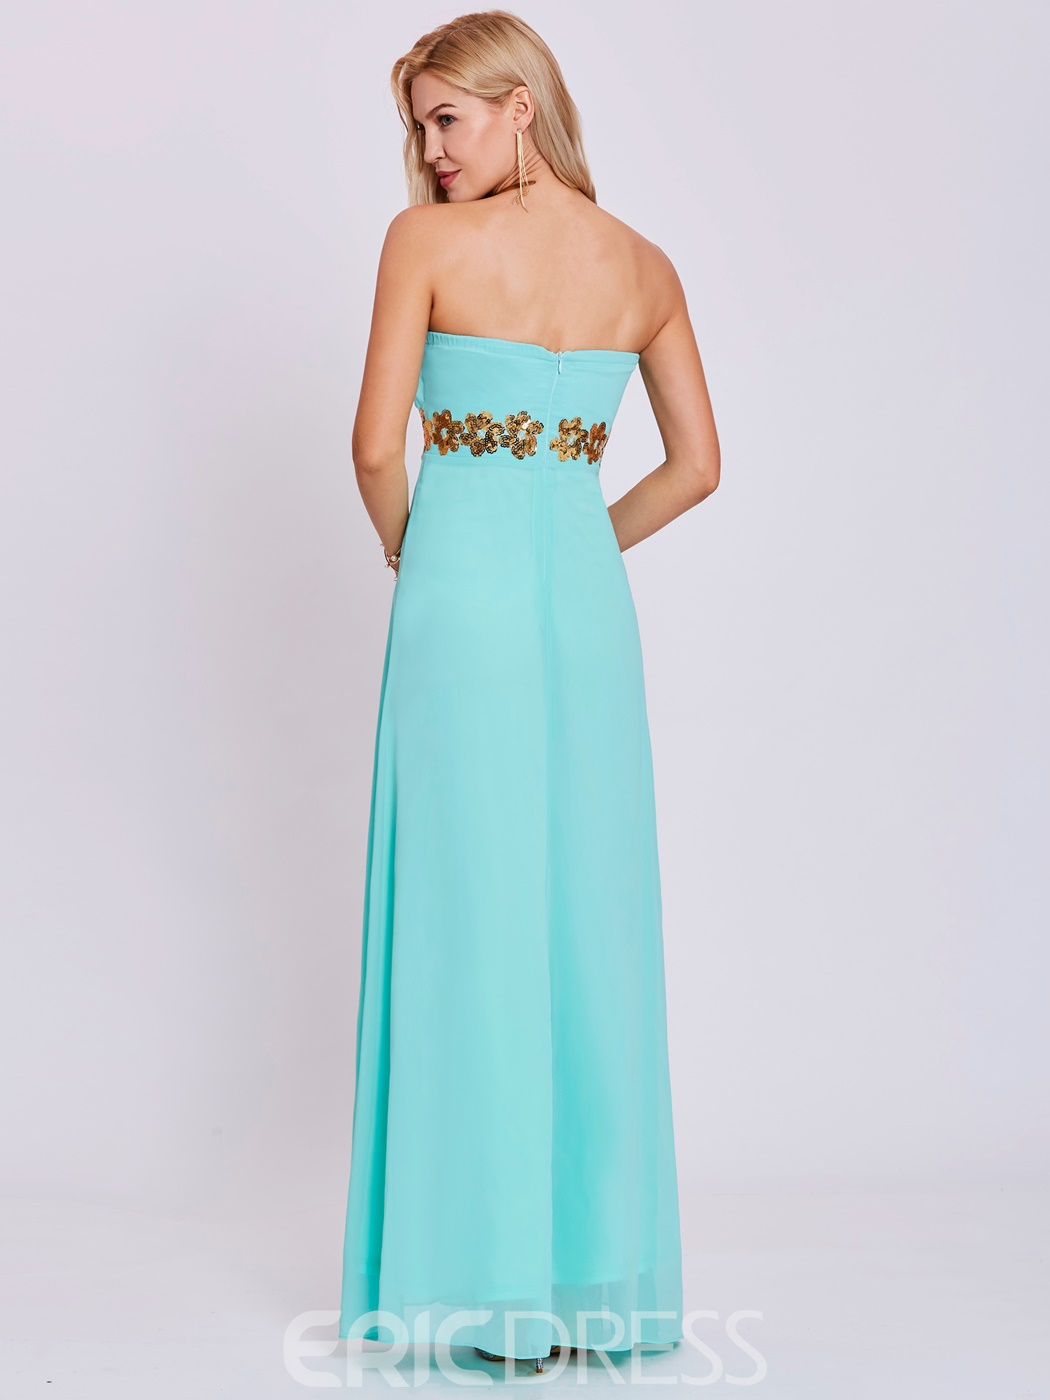 Ericdress Strapless Sequins A Line Prom Dress